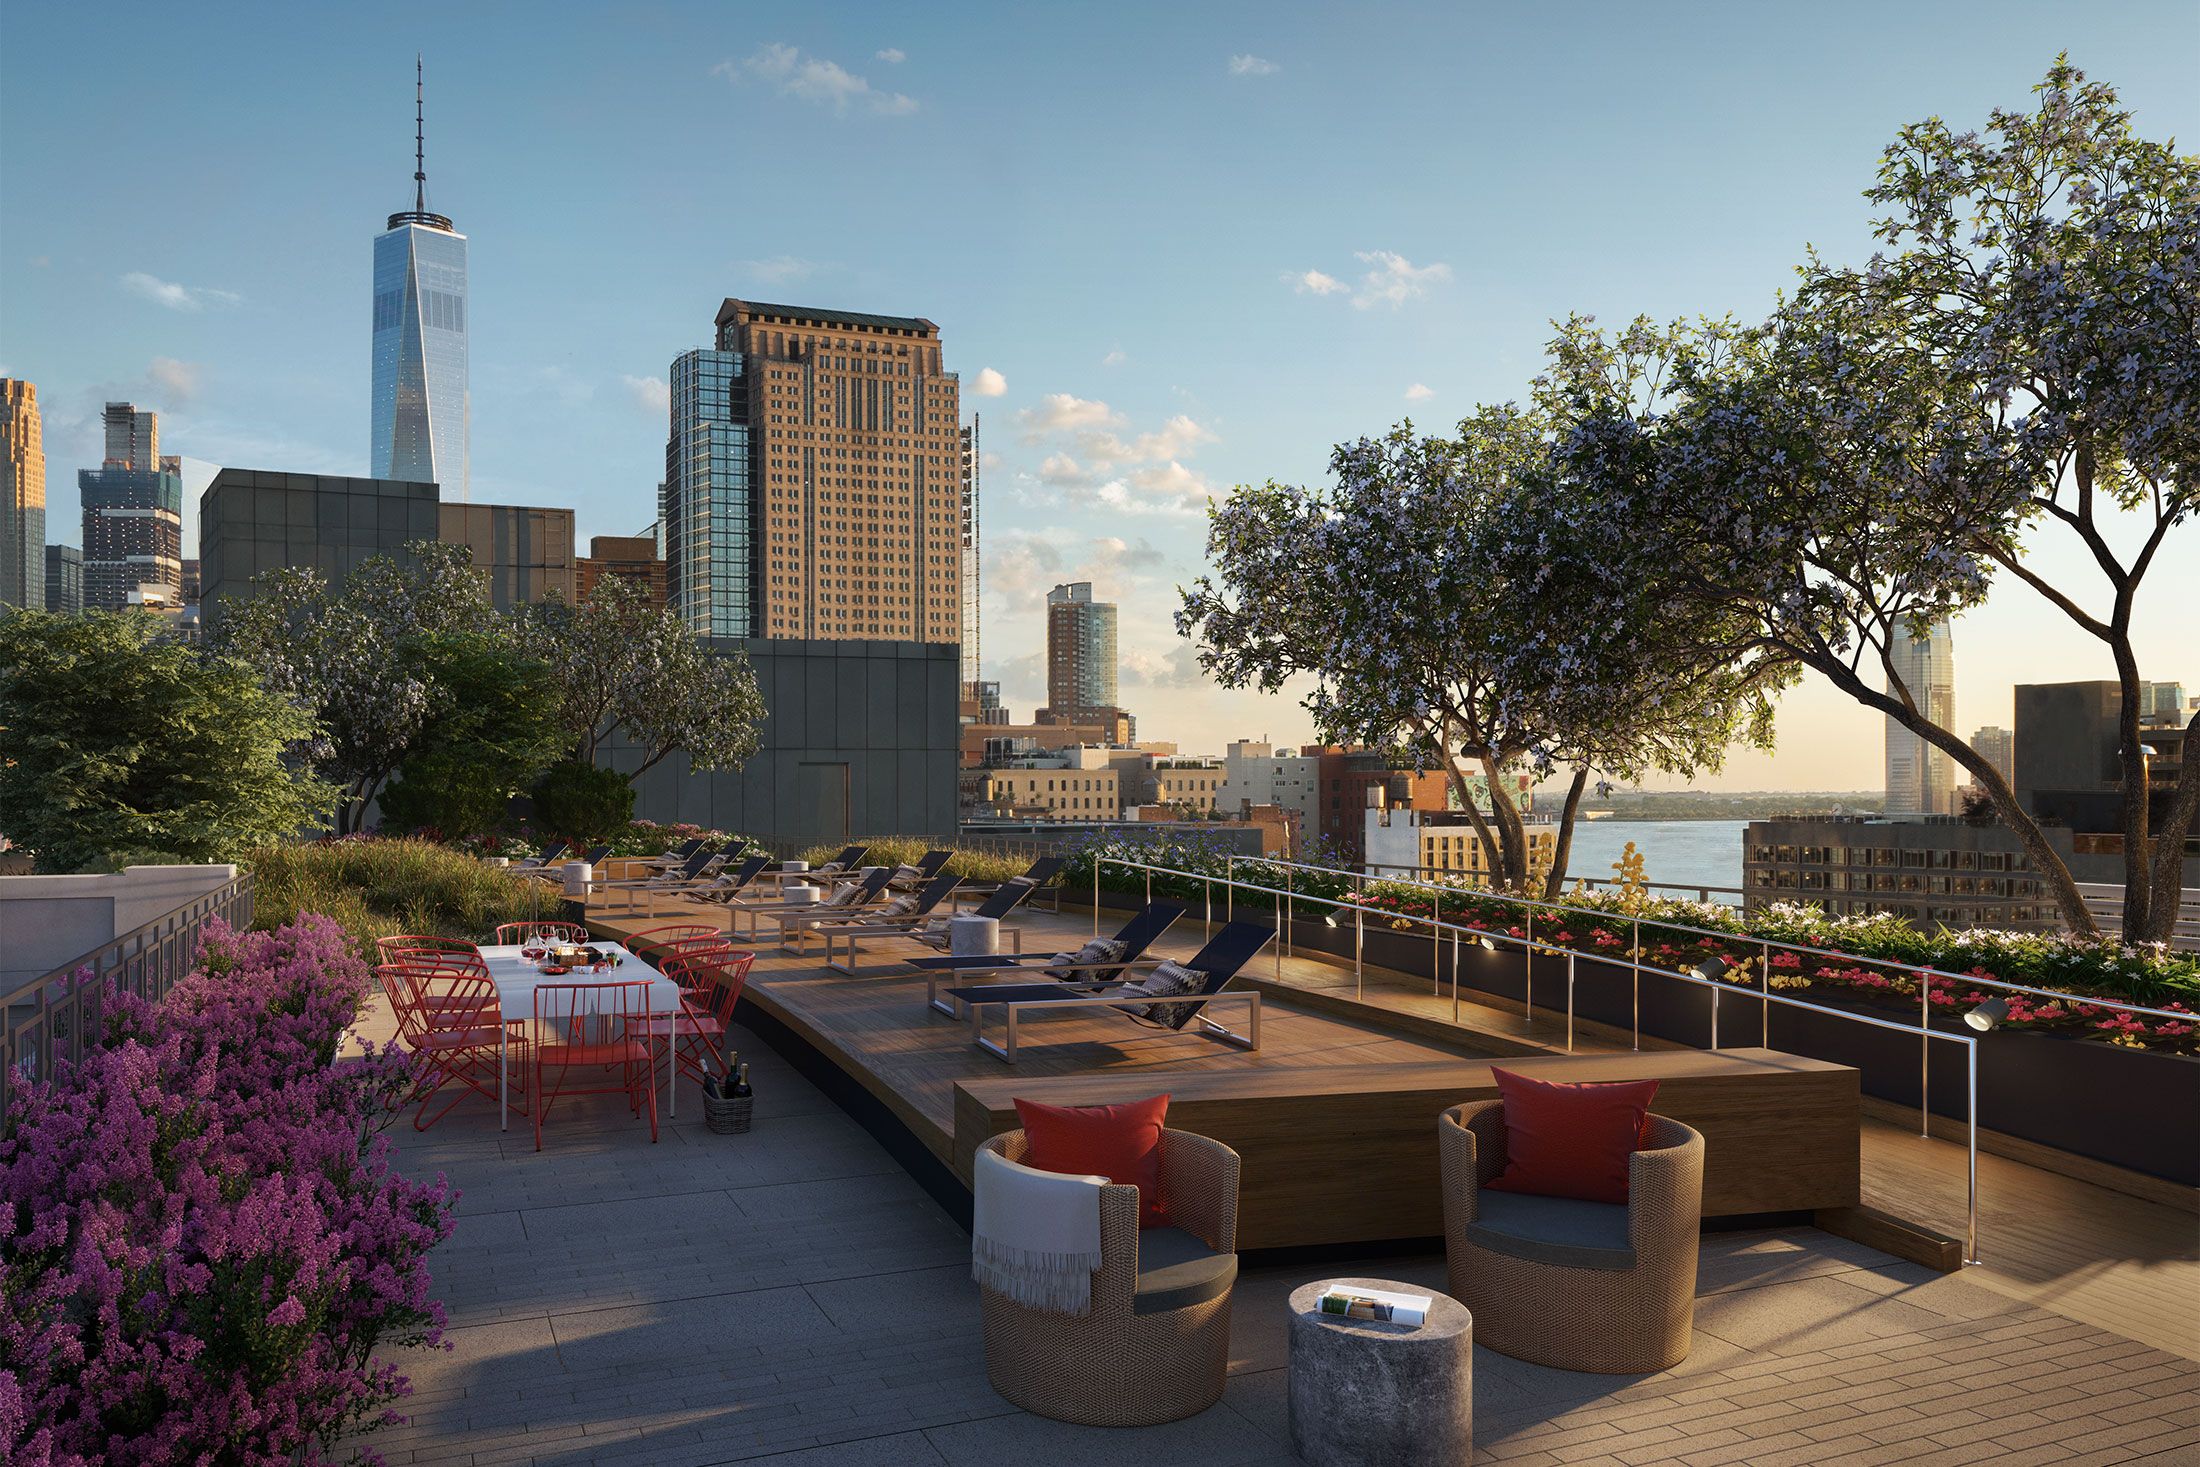 Architectural Rendering of the rooftop of the 261 Hudson project located in West Soho, New York City